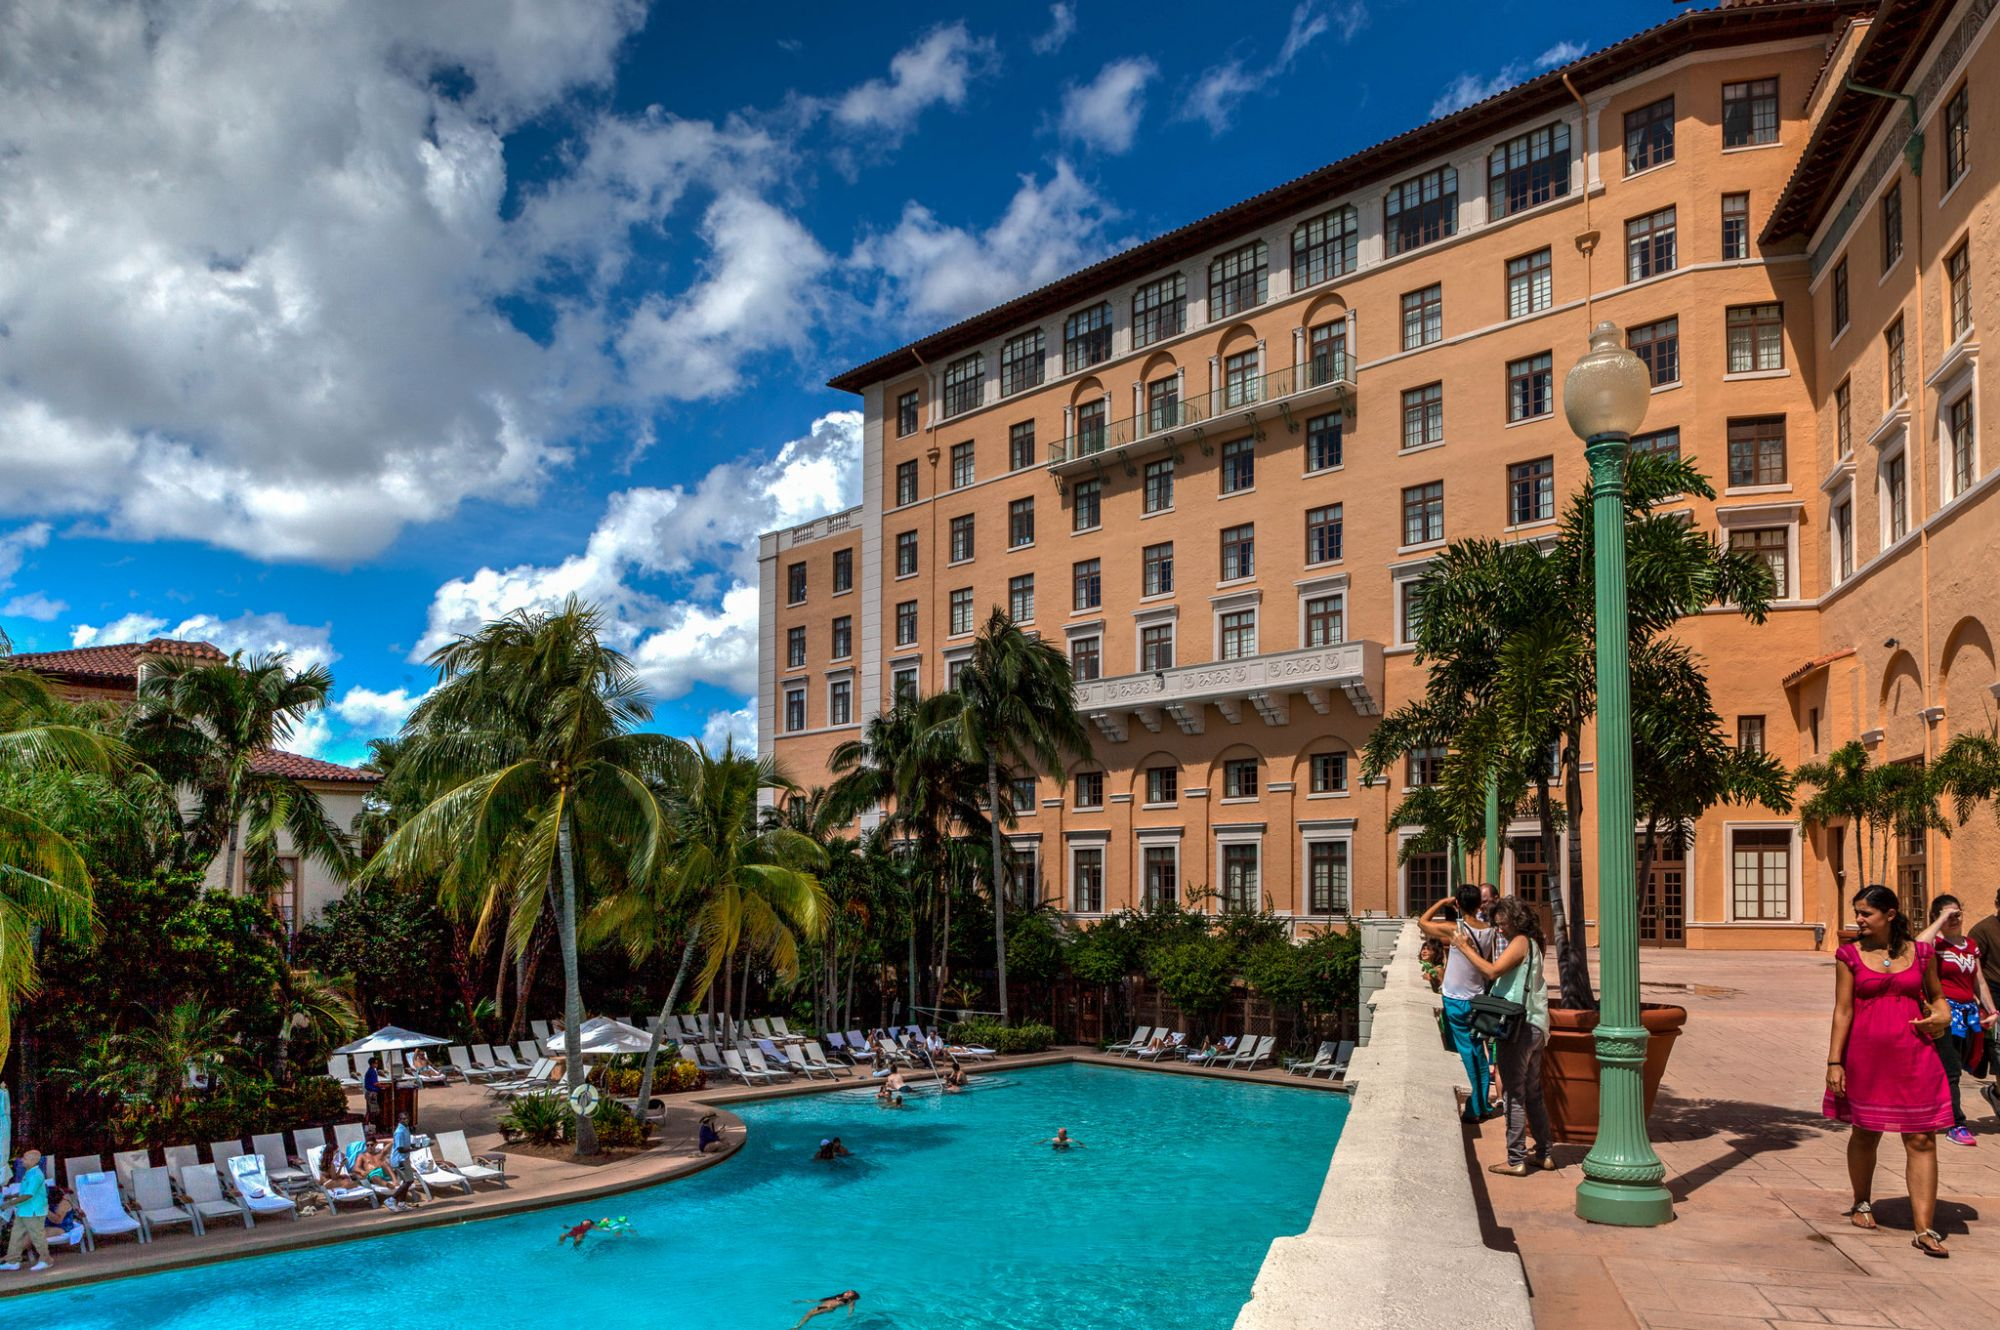 Visit The Biltmore Hotel In Coral Gables And Take A Free